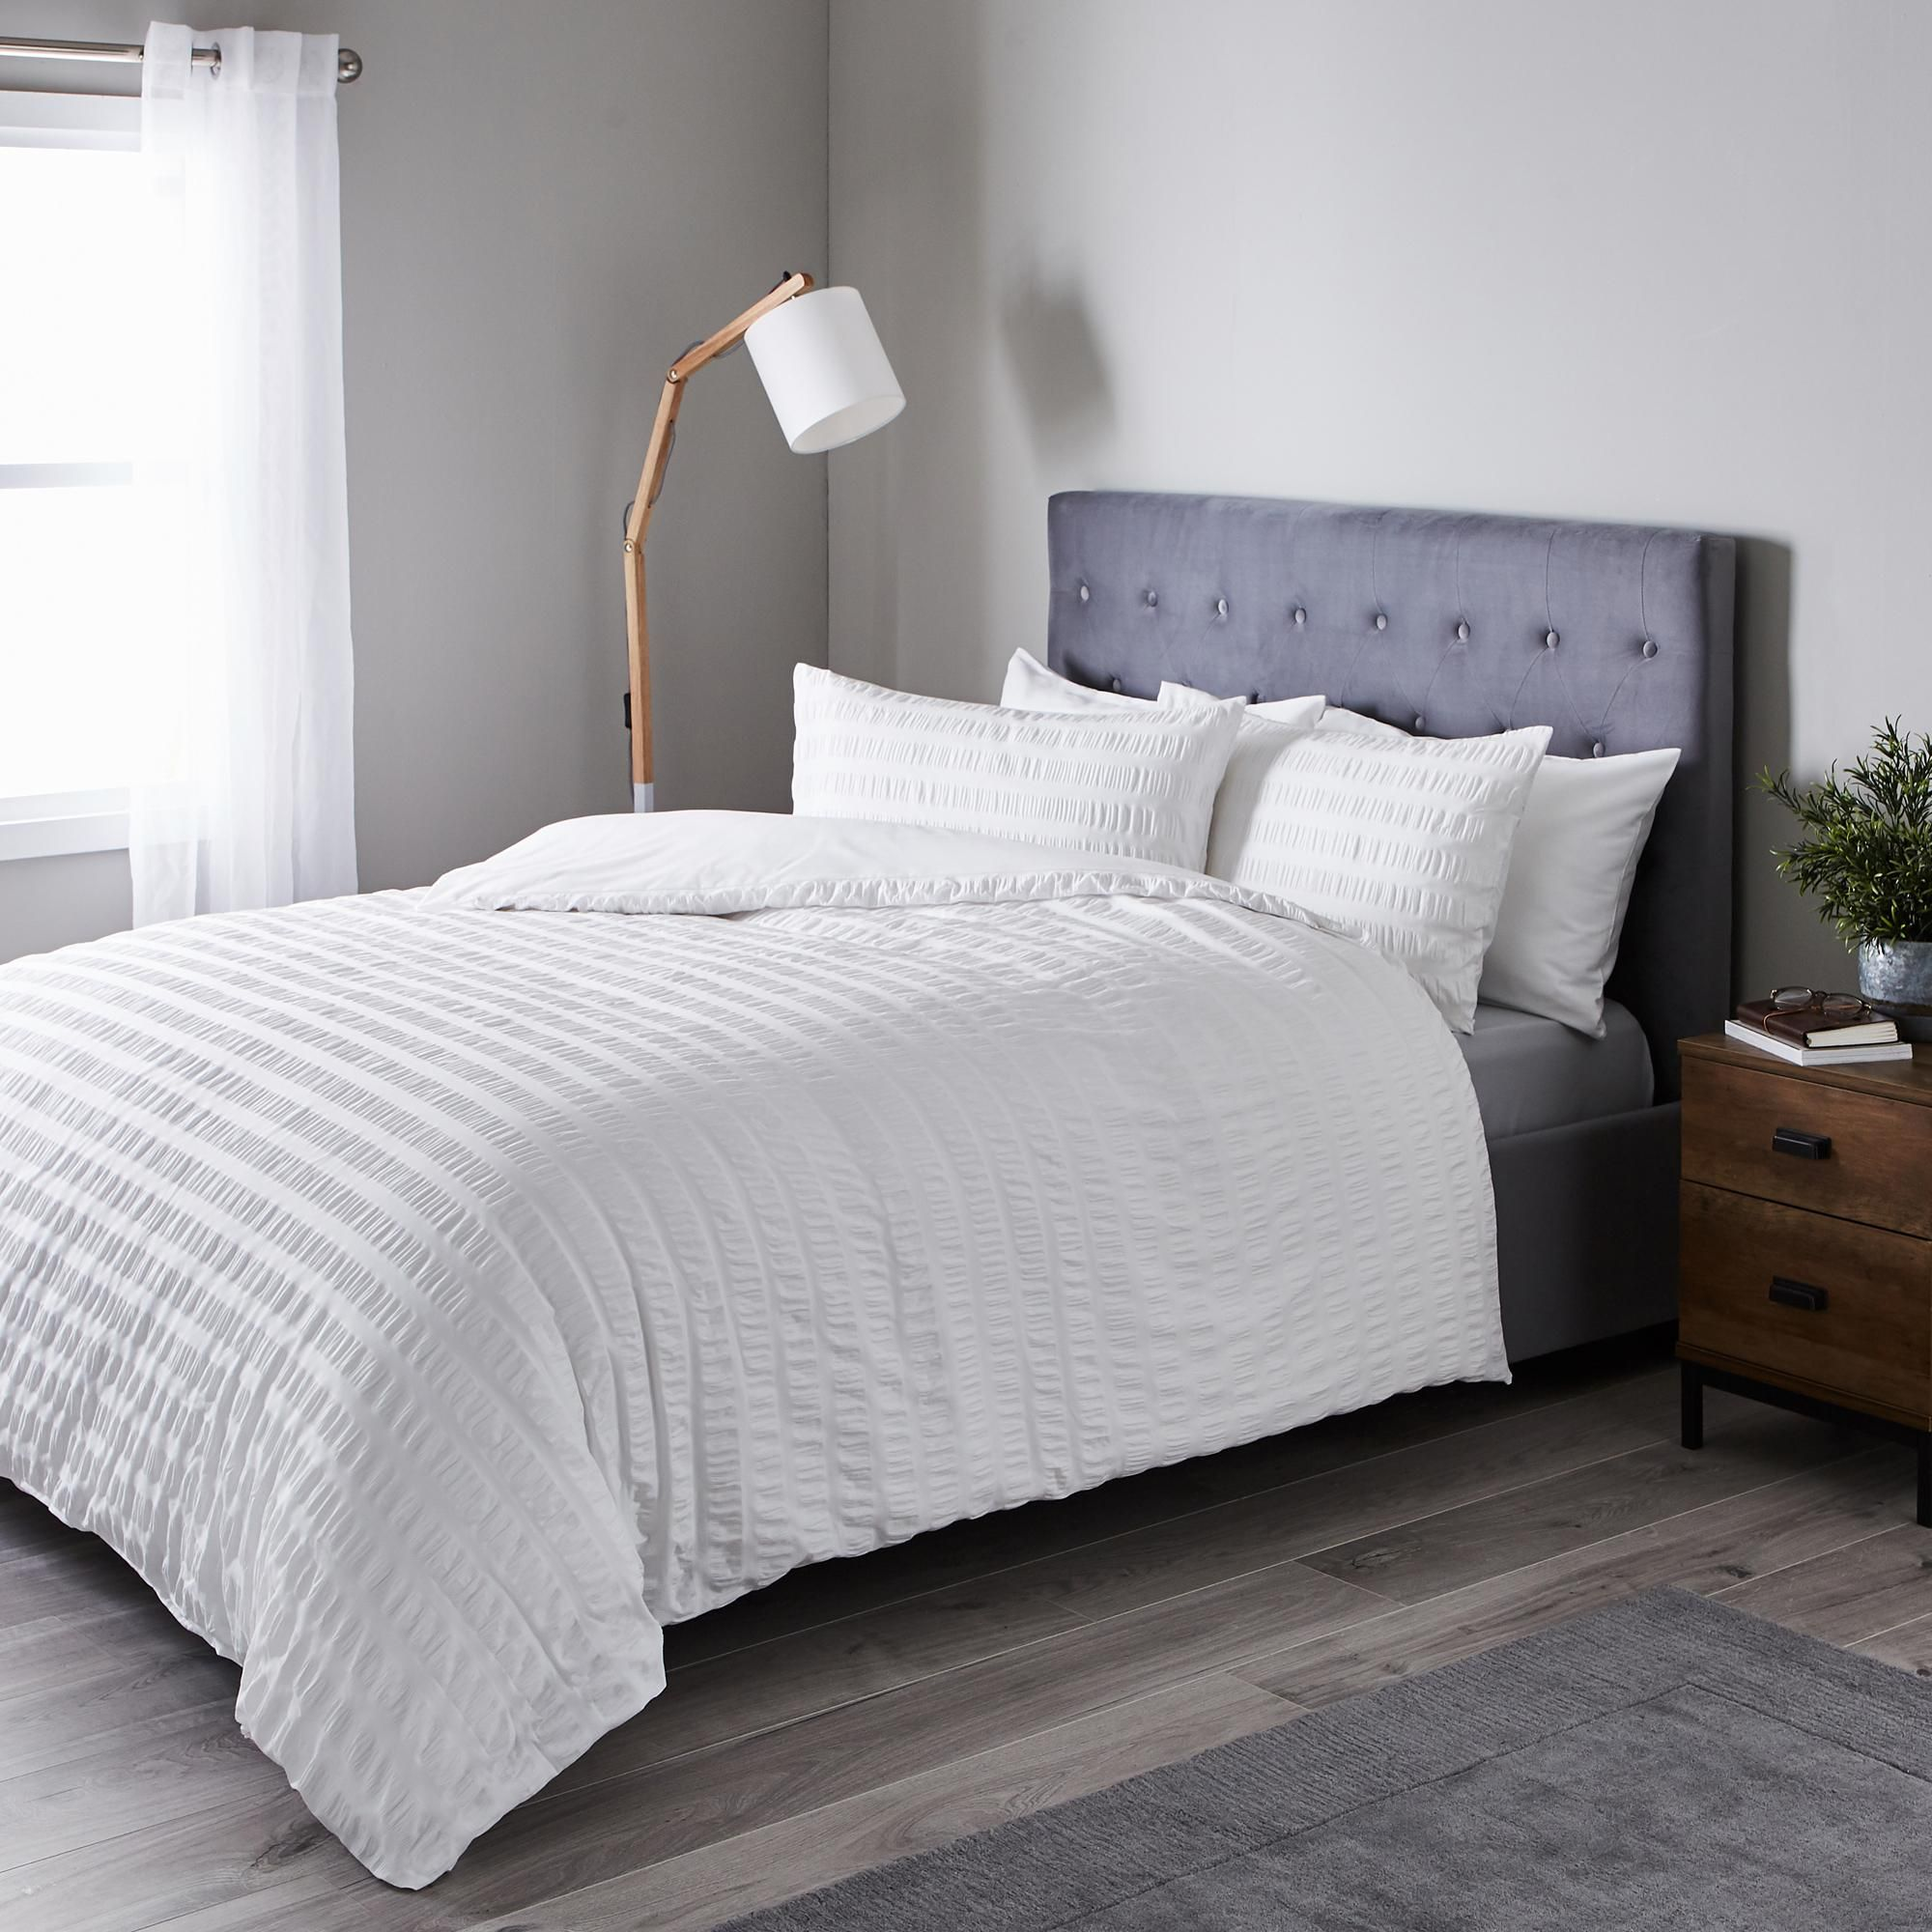 Seersucker White Ruched Duvet Cover And Pillowcase Set With